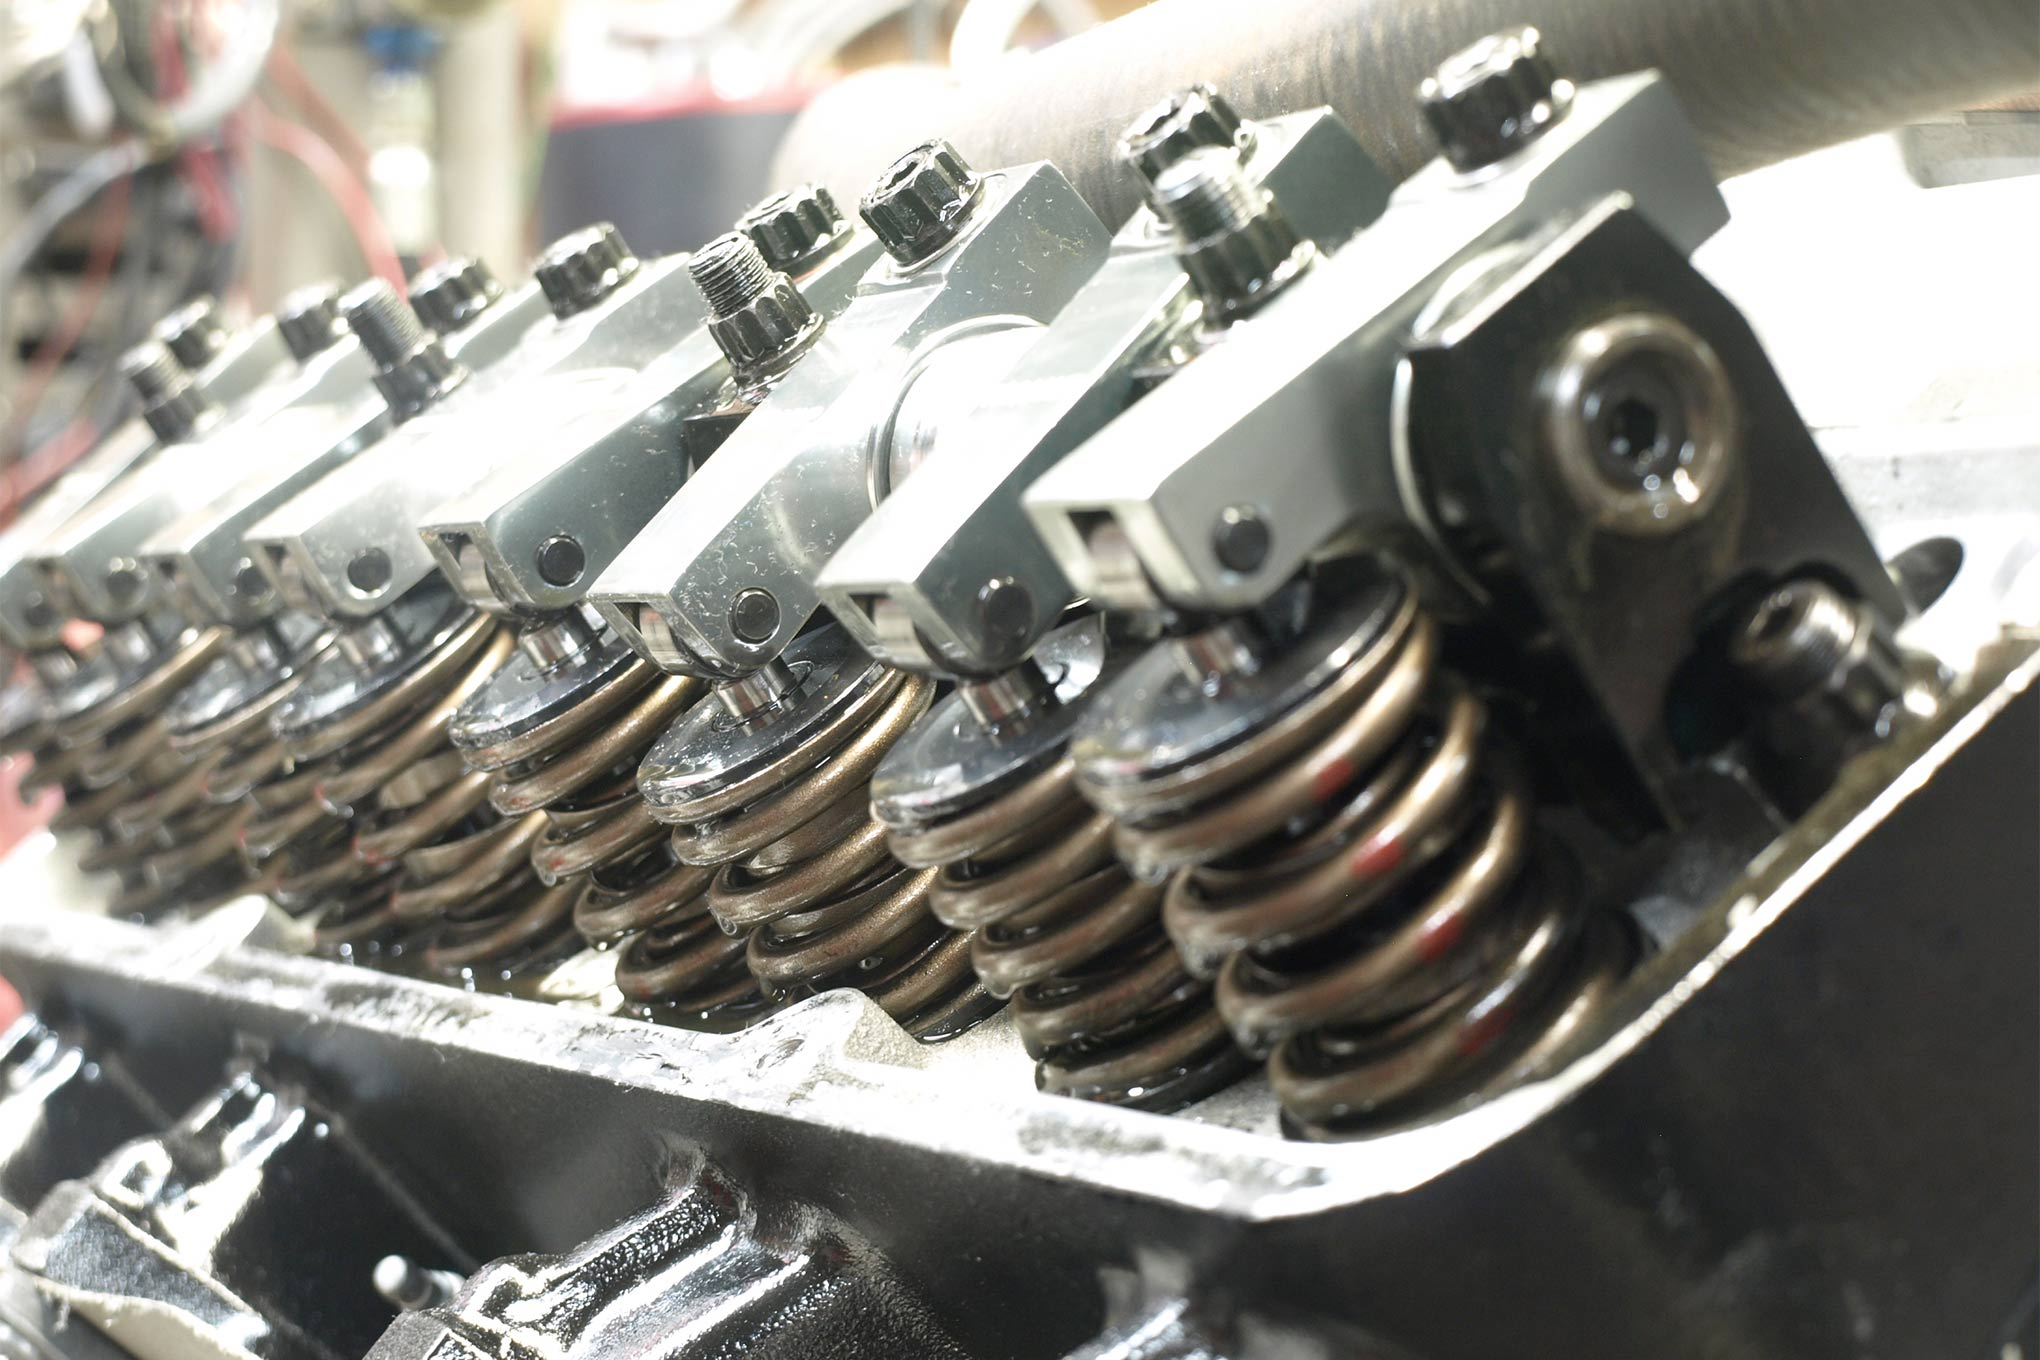 To suit the hefty hydraulic roller lifters, a set of Comp Cams double valvesprings (with dampers) replace the single-coil Edelbrock items. At 1.840-inch installed height, they deliver 165 pounds on the seat and 430 pounds at 0.557-inch lift. The Edelbrock valves and chrome-moly retainers are reused. The 1.76:1 aluminum roller rockers are from Pro Comp (PN 261-1134) with lifter preload set at 0.040-inch (3/4 turn on each adjuster past zero lash).